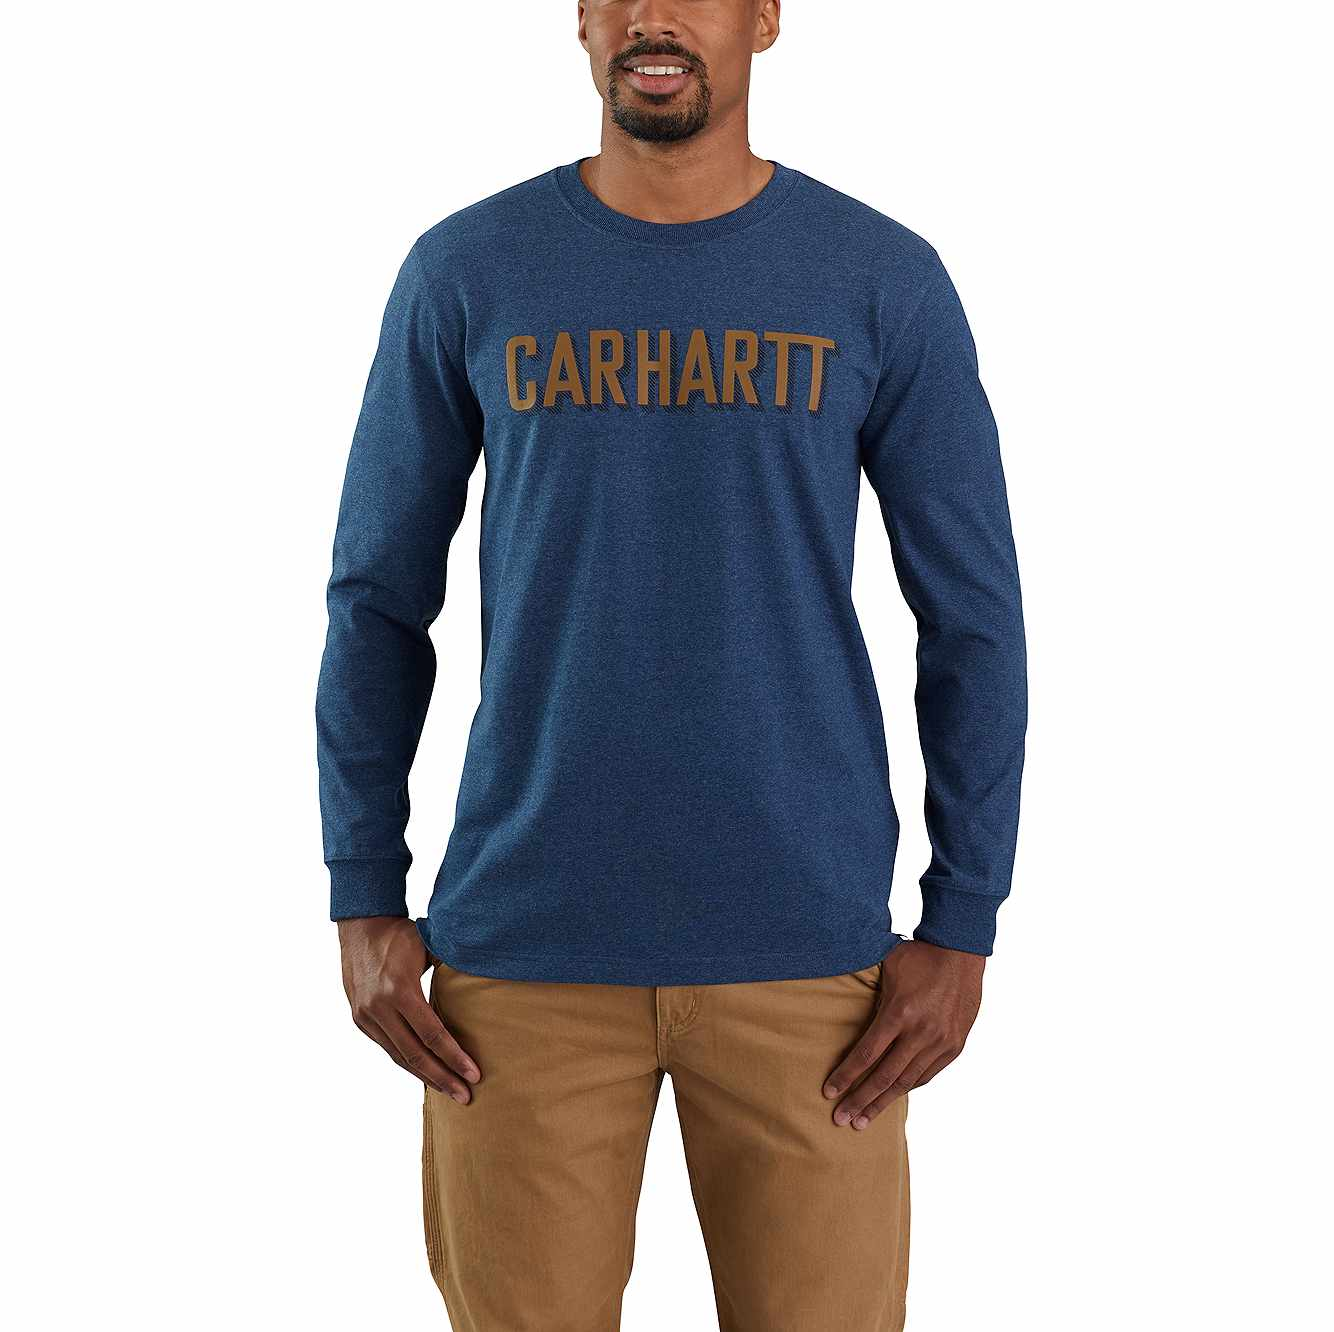 Picture of RELAXED FIT HEAVYWEIGHT LONG-SLEEVE BLOCK LOGO GRAPHIC T-SHIRT